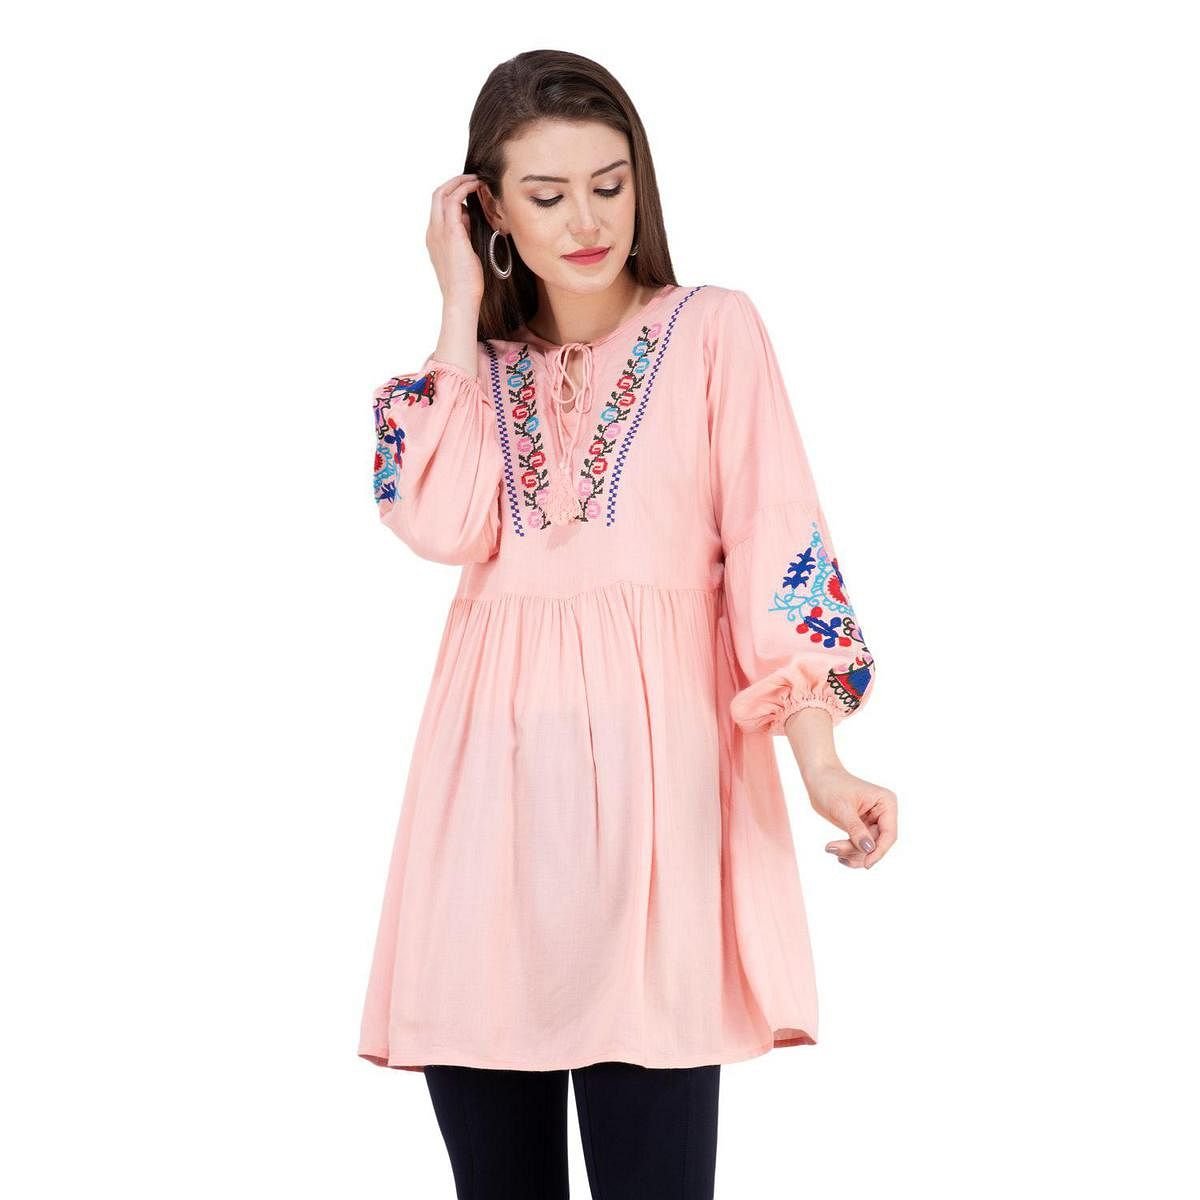 SAAKAA - Women's Rayon Pink Embroidered Top